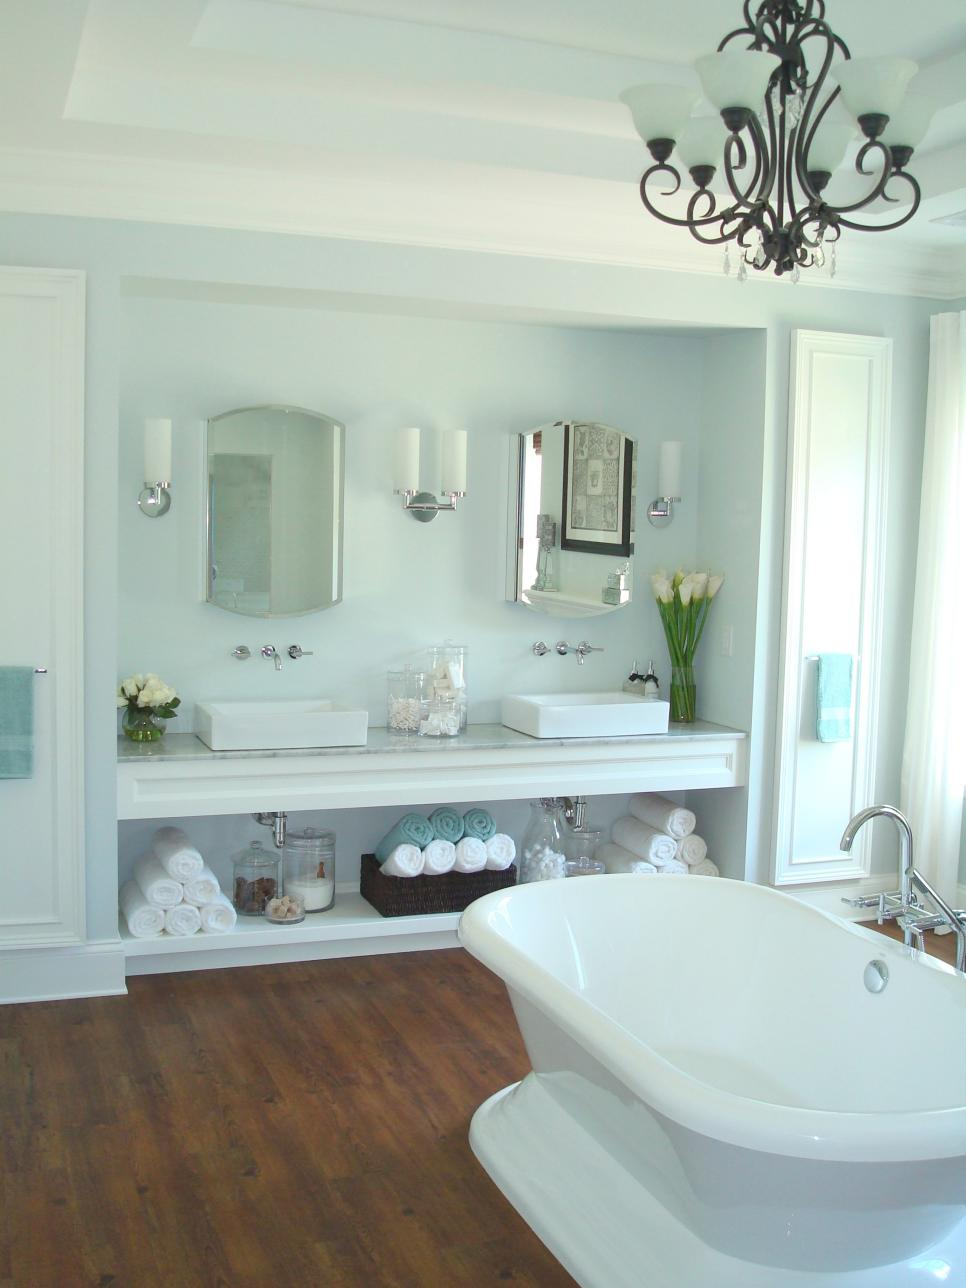 Bathroom Vanity Plans: The Best Bathroom Vanity Ideas